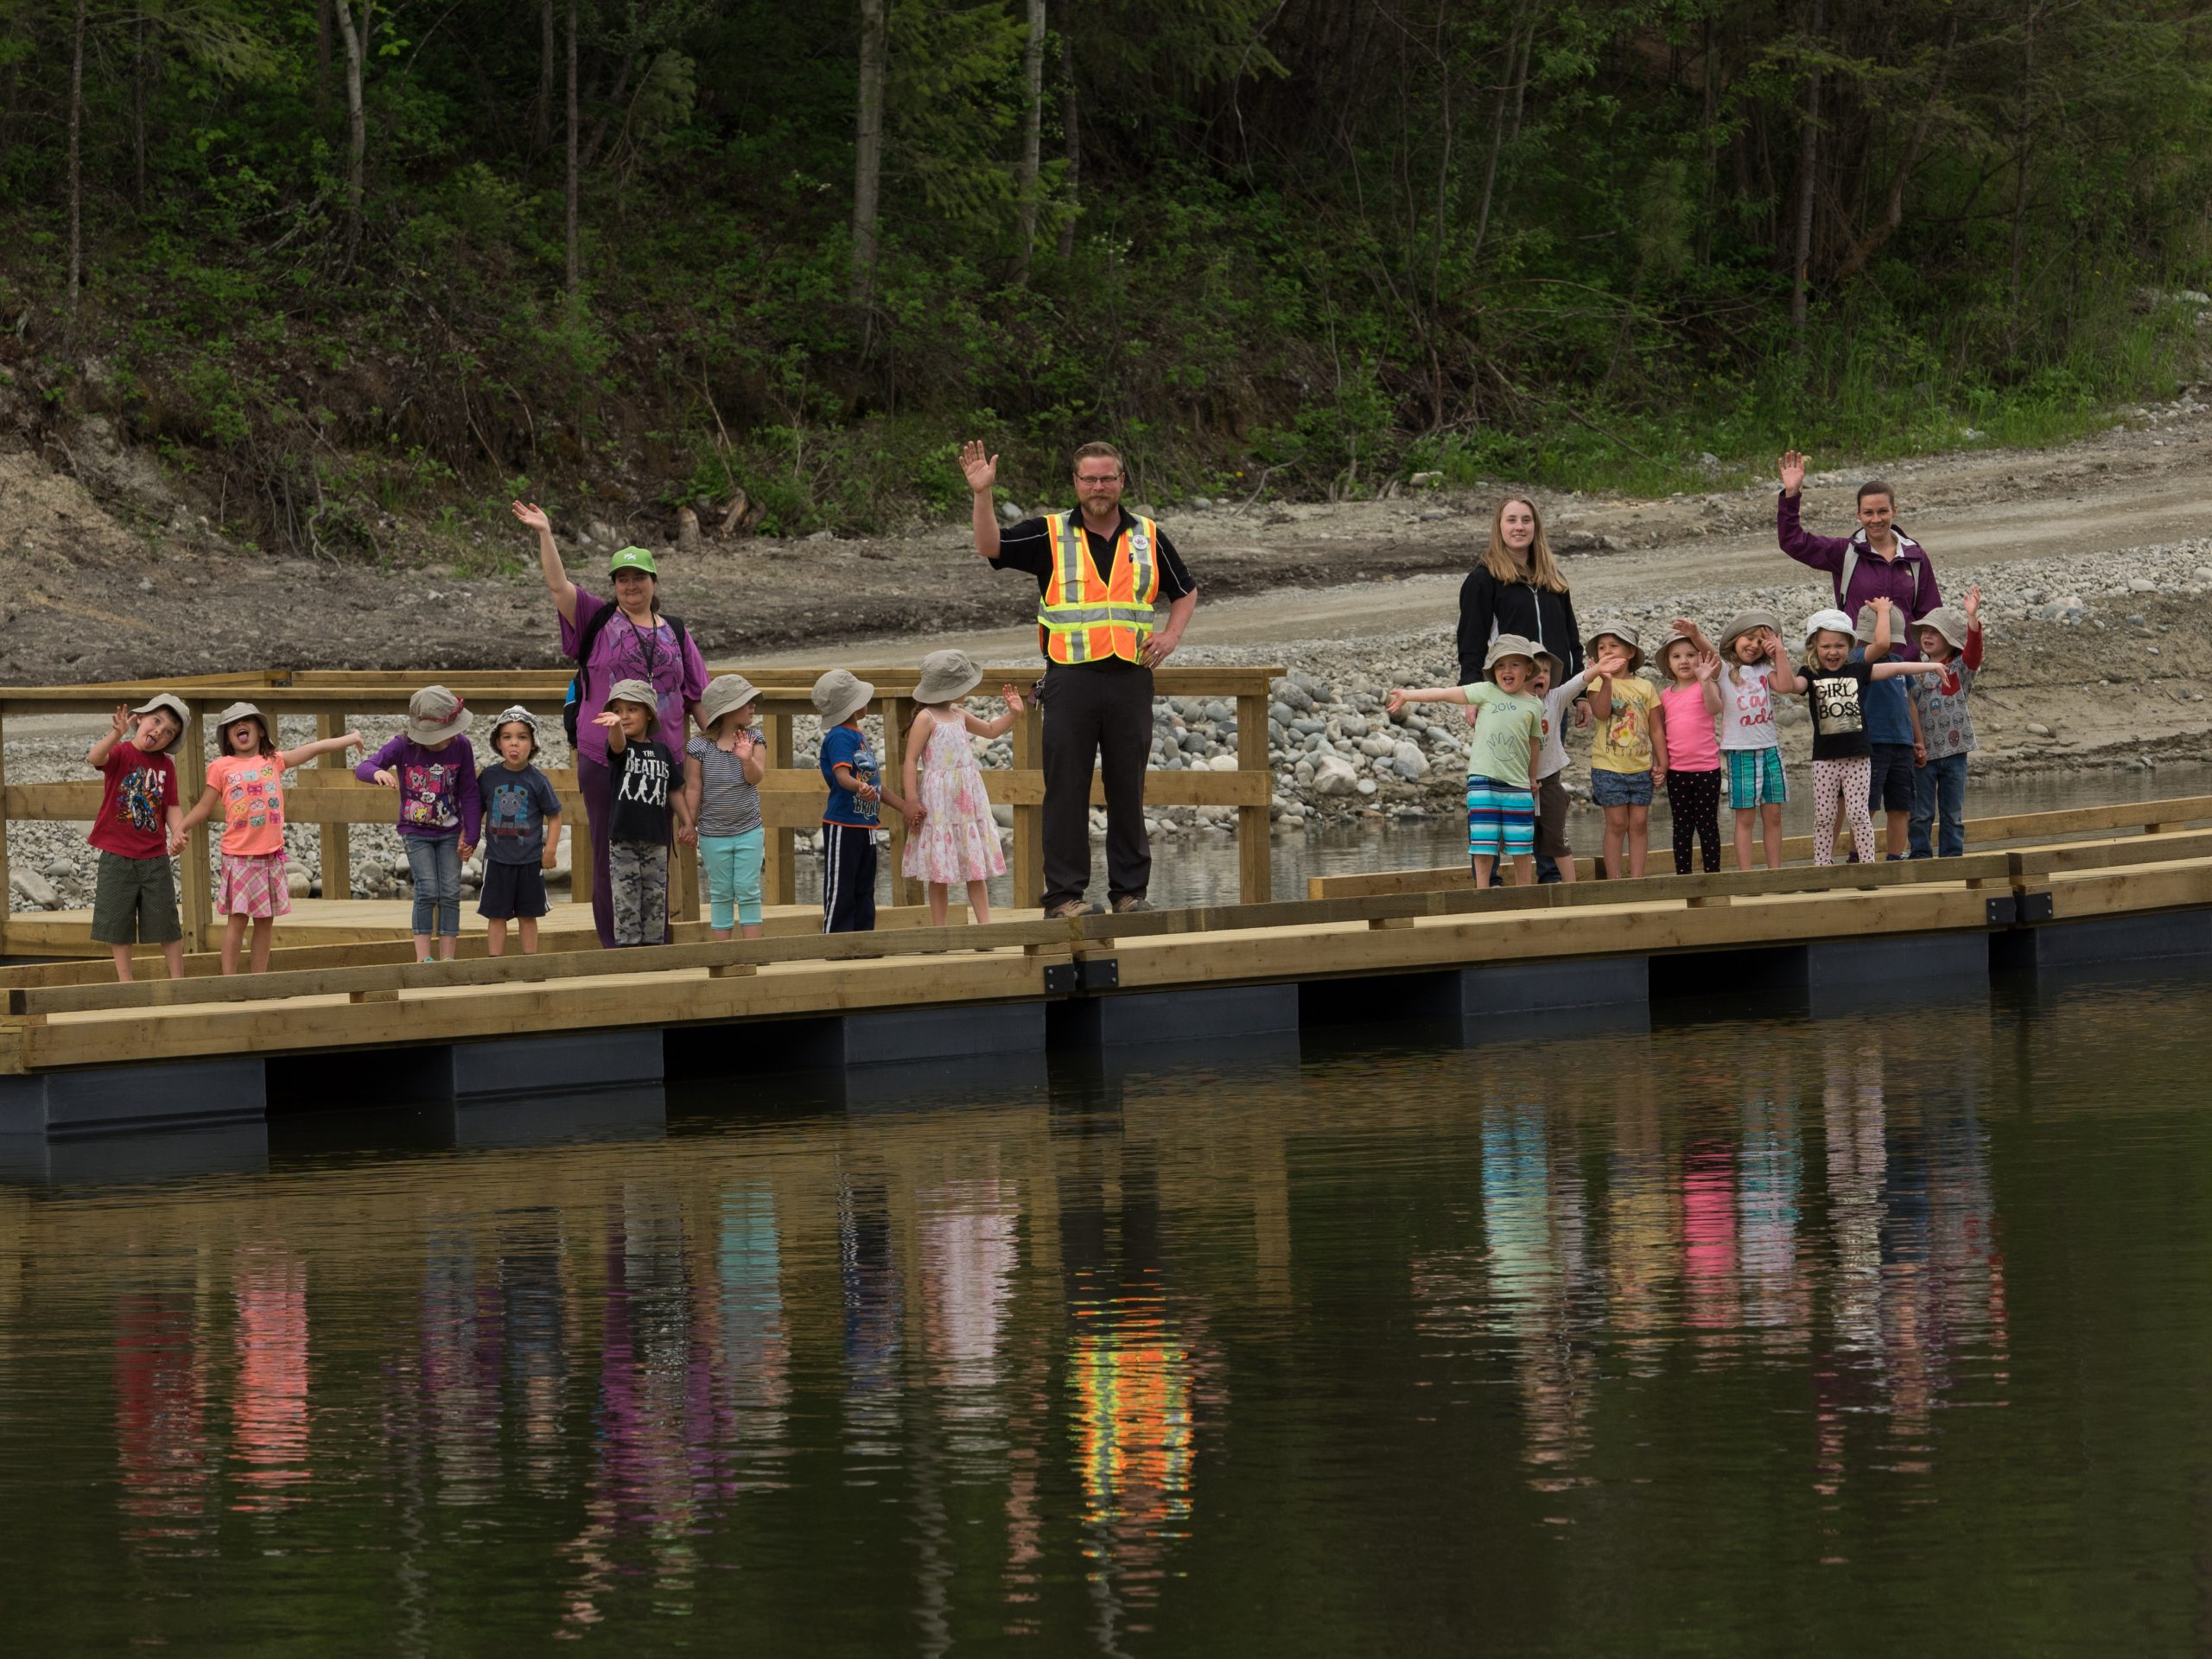 New docks, rainbow trout added to Cranbrook's Idlewild Lake